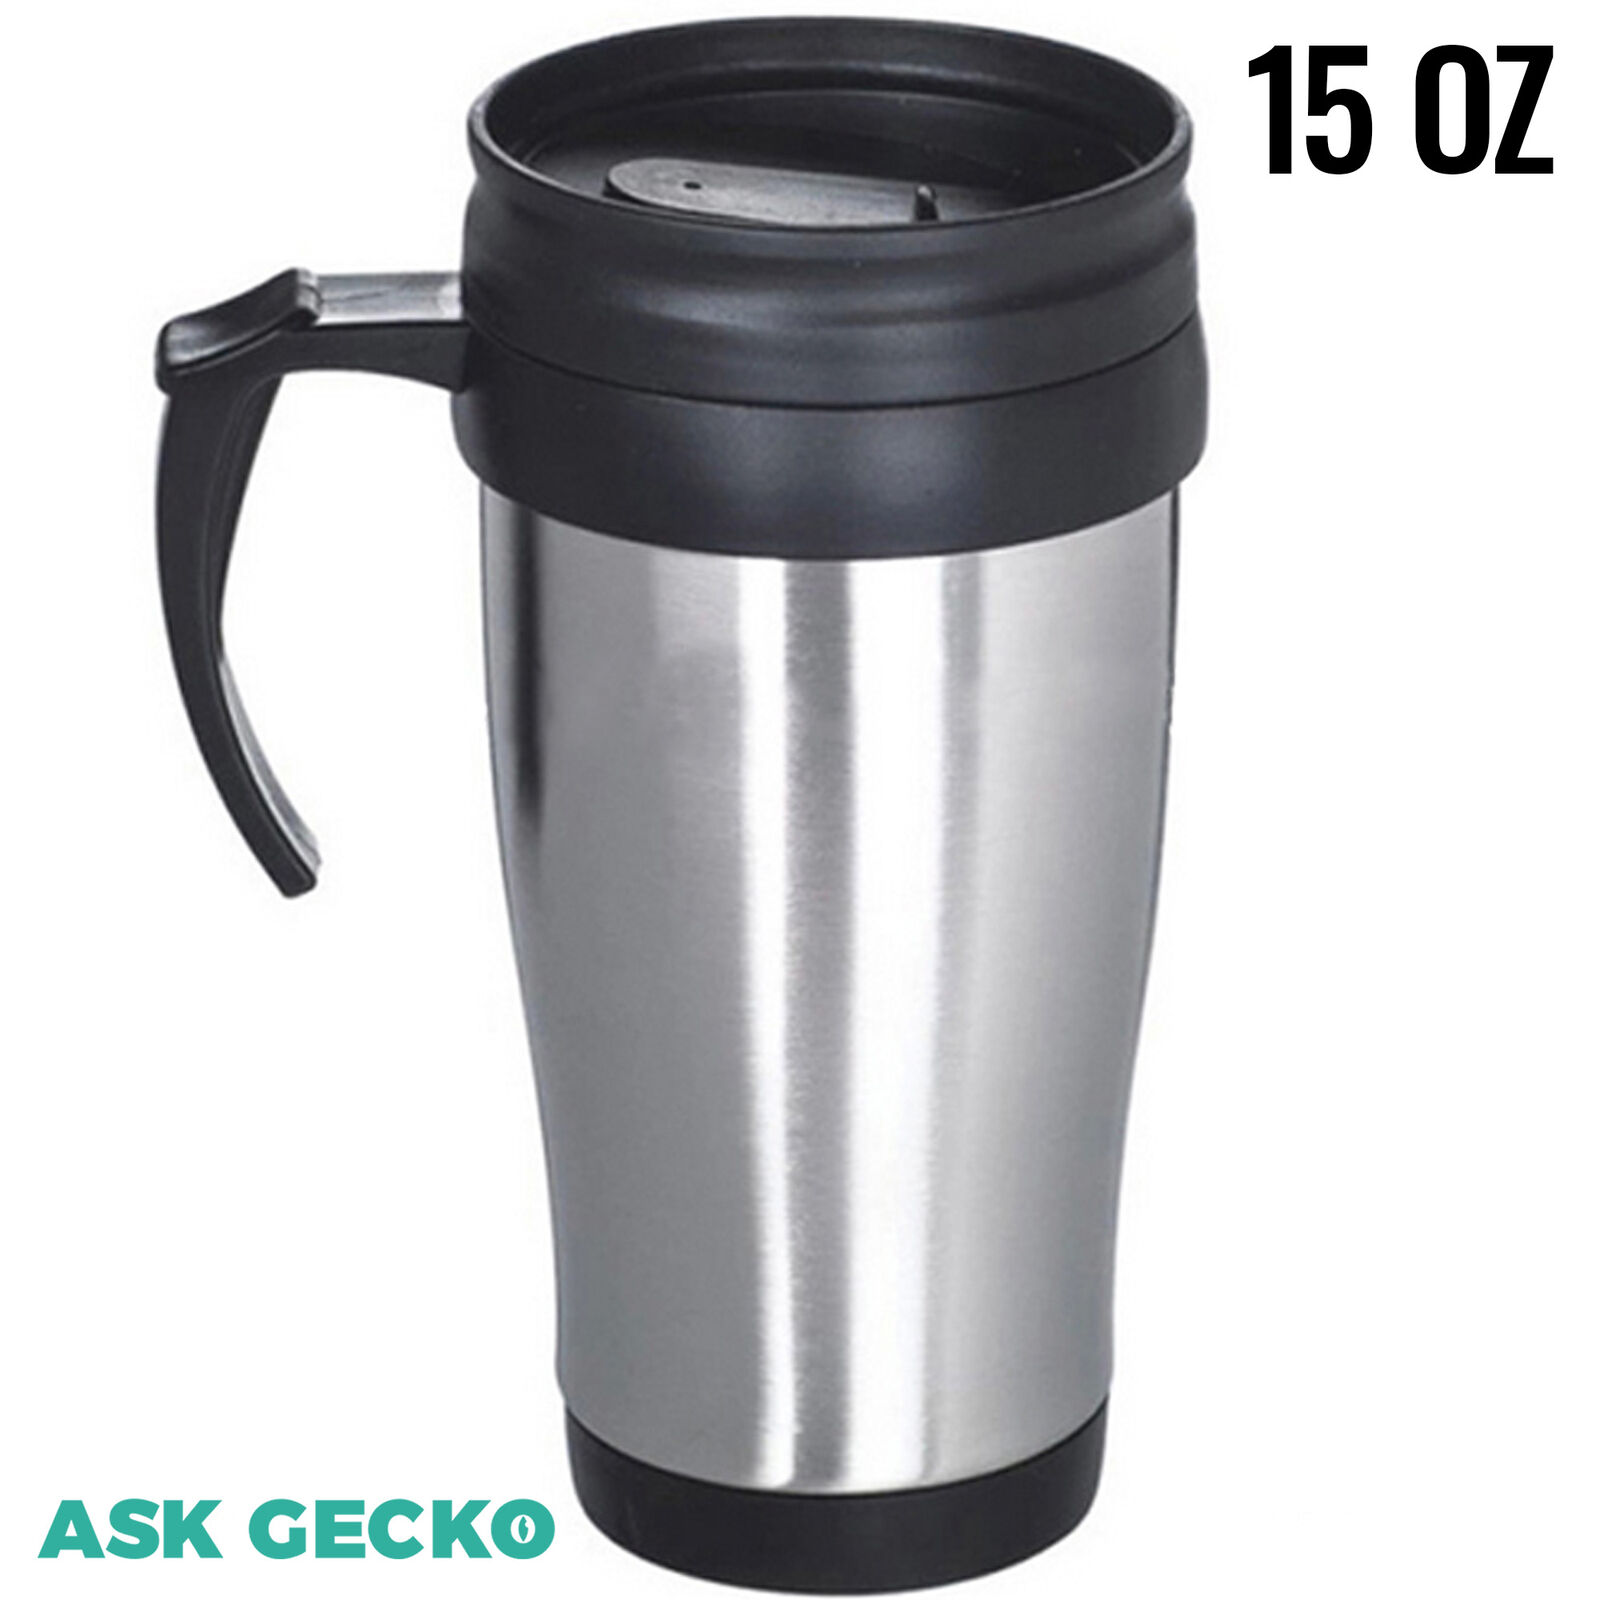 480 ml//16 oz Ion8 Caf/éStor Leak Proof Insulated Steel Reusable Coffee Cup Flask